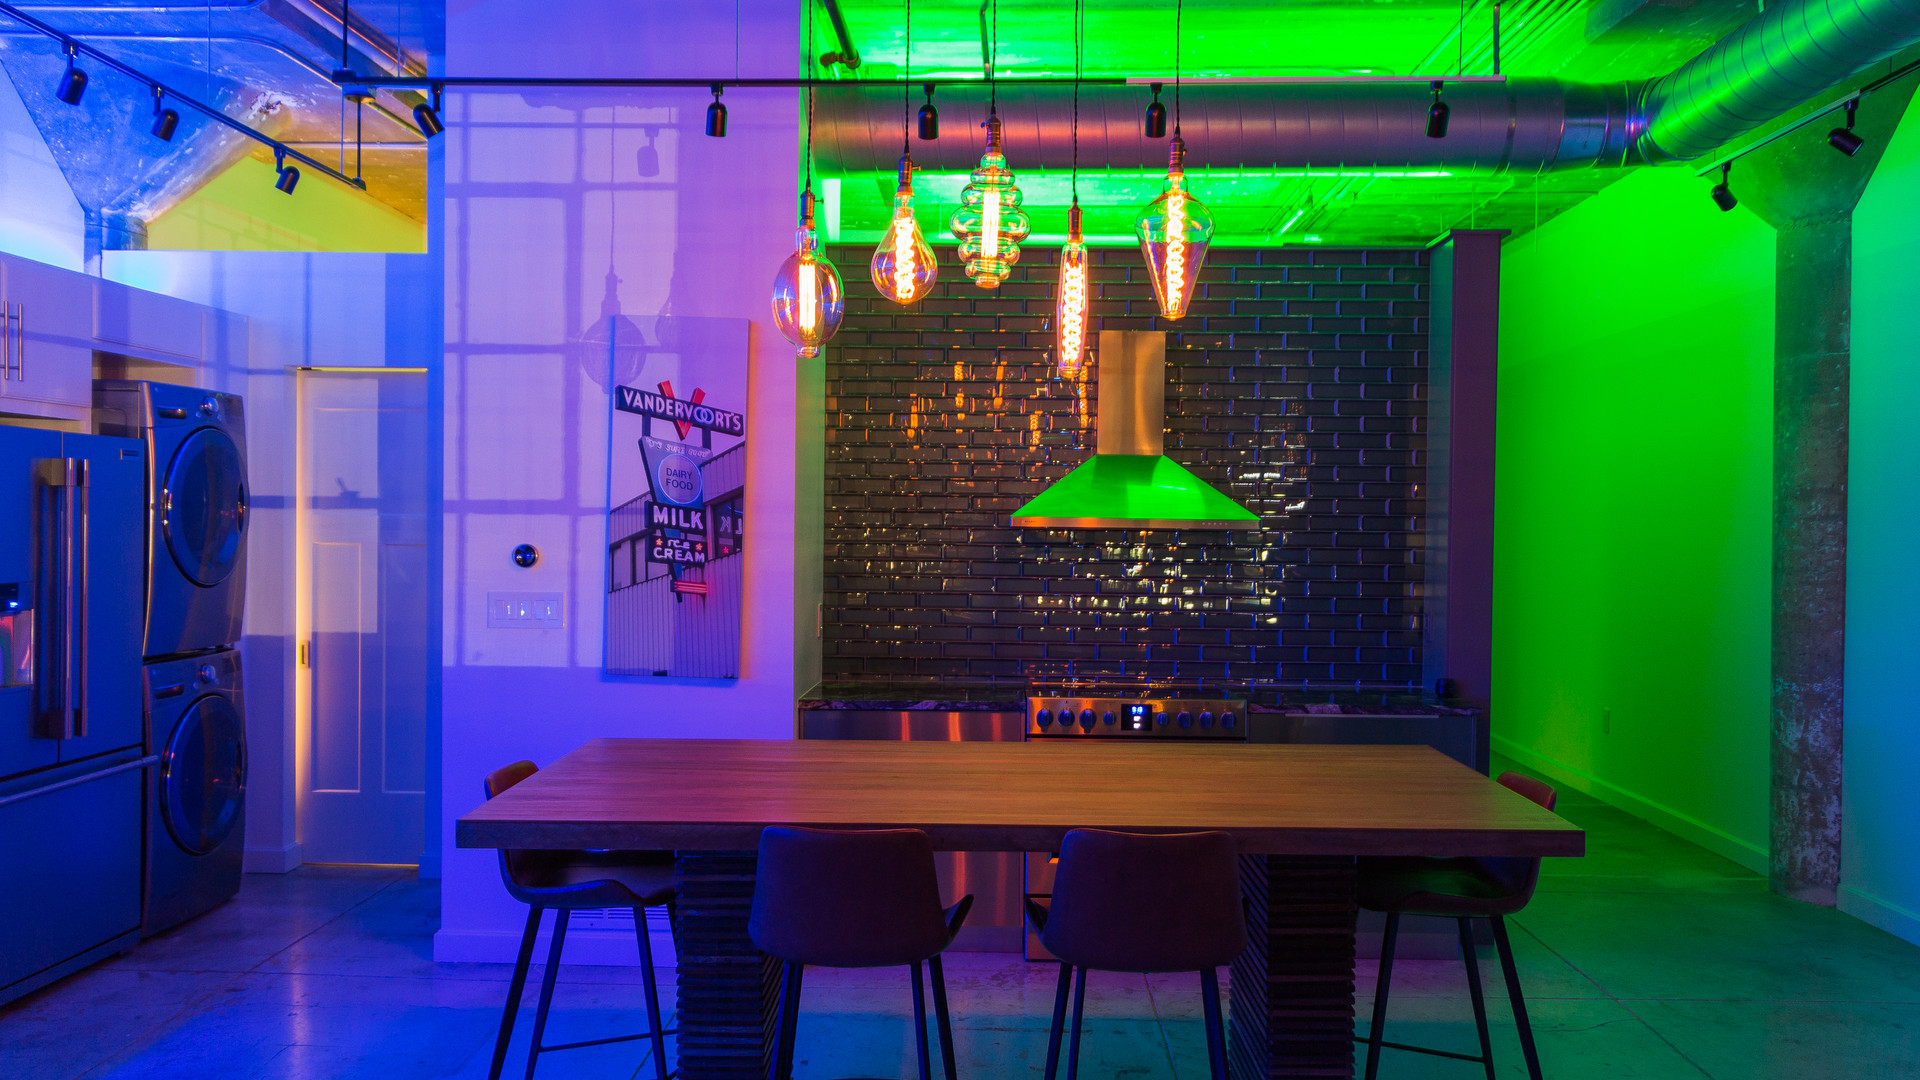 Fun, custom lighting means the space can change for any mood